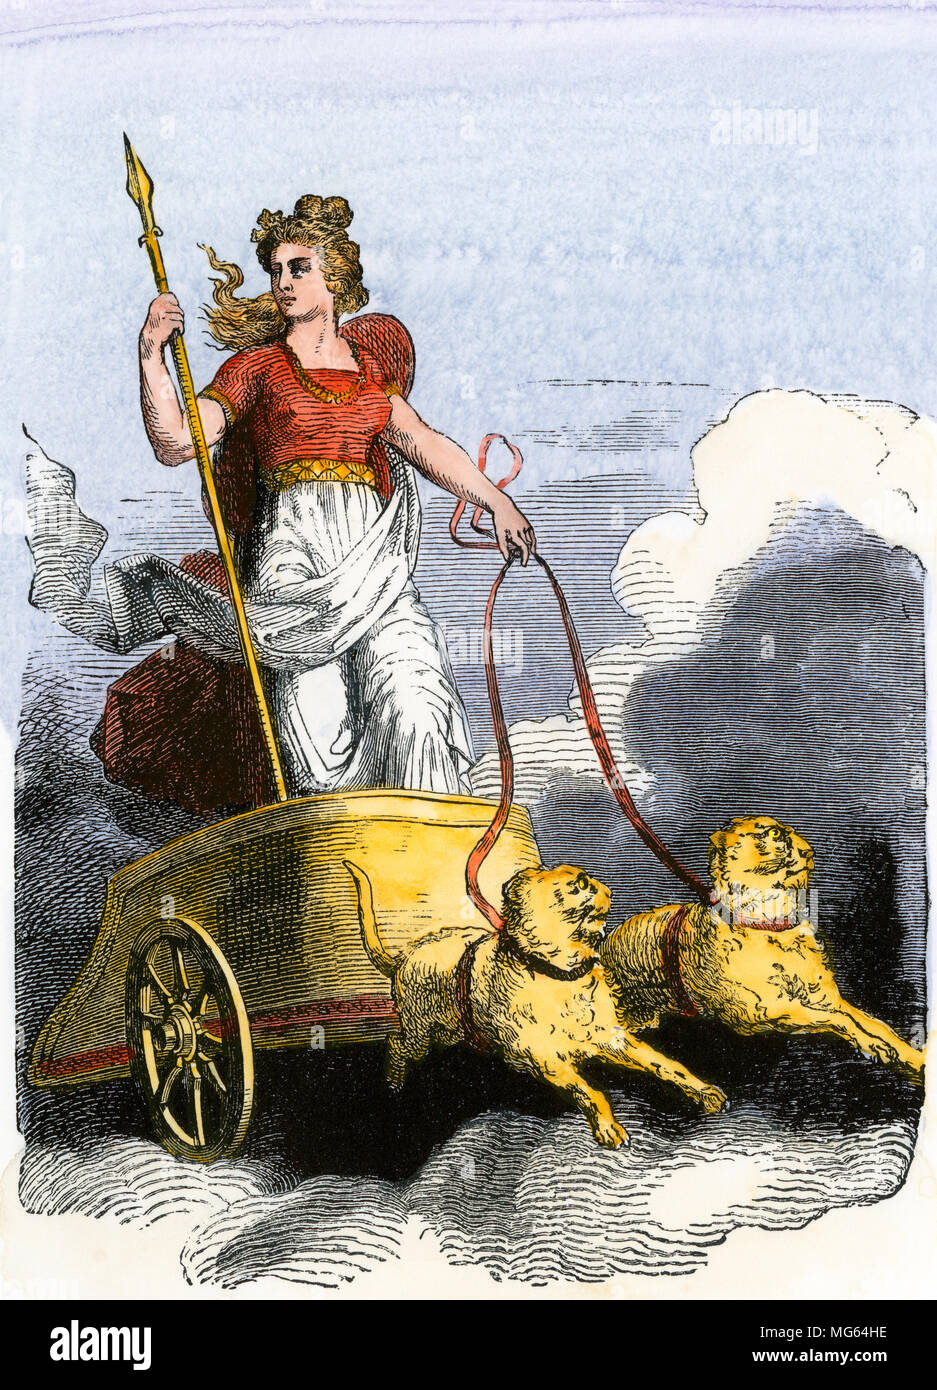 Norse deity Frigga, wife of Odin, driving a chariot. Hand-colored woodcut - Stock Image